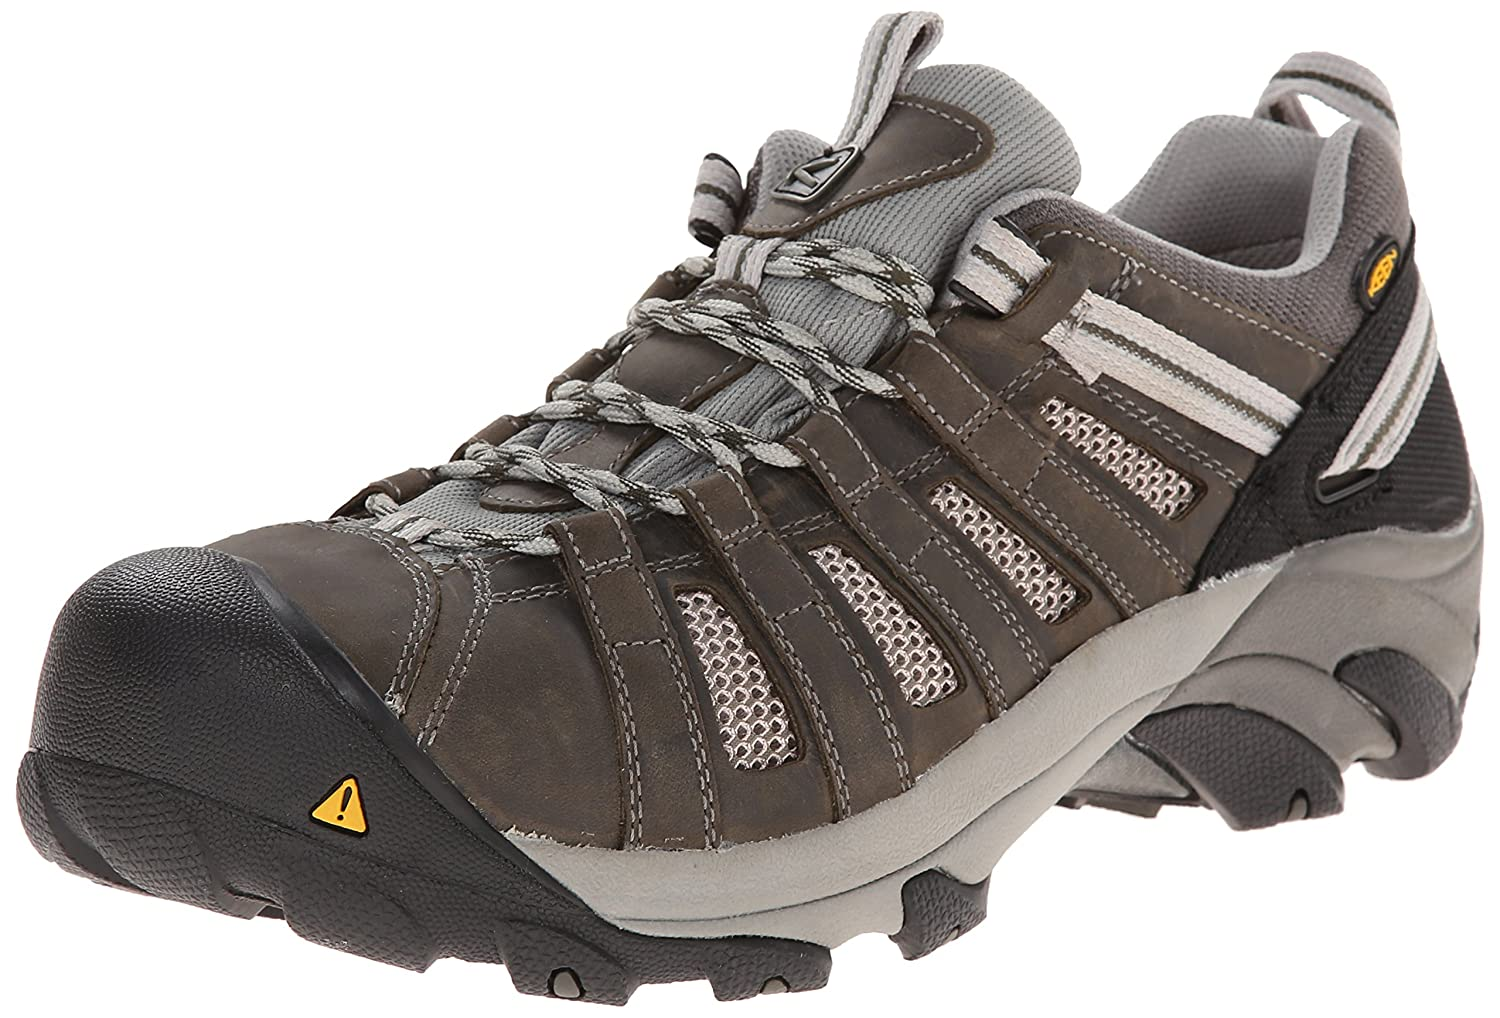 Keen Utility メンズ B00MXEI3D2 8.5 D(M) US|Gargoyle/Forest Night Gargoyle/Forest Night 8.5 D(M) US